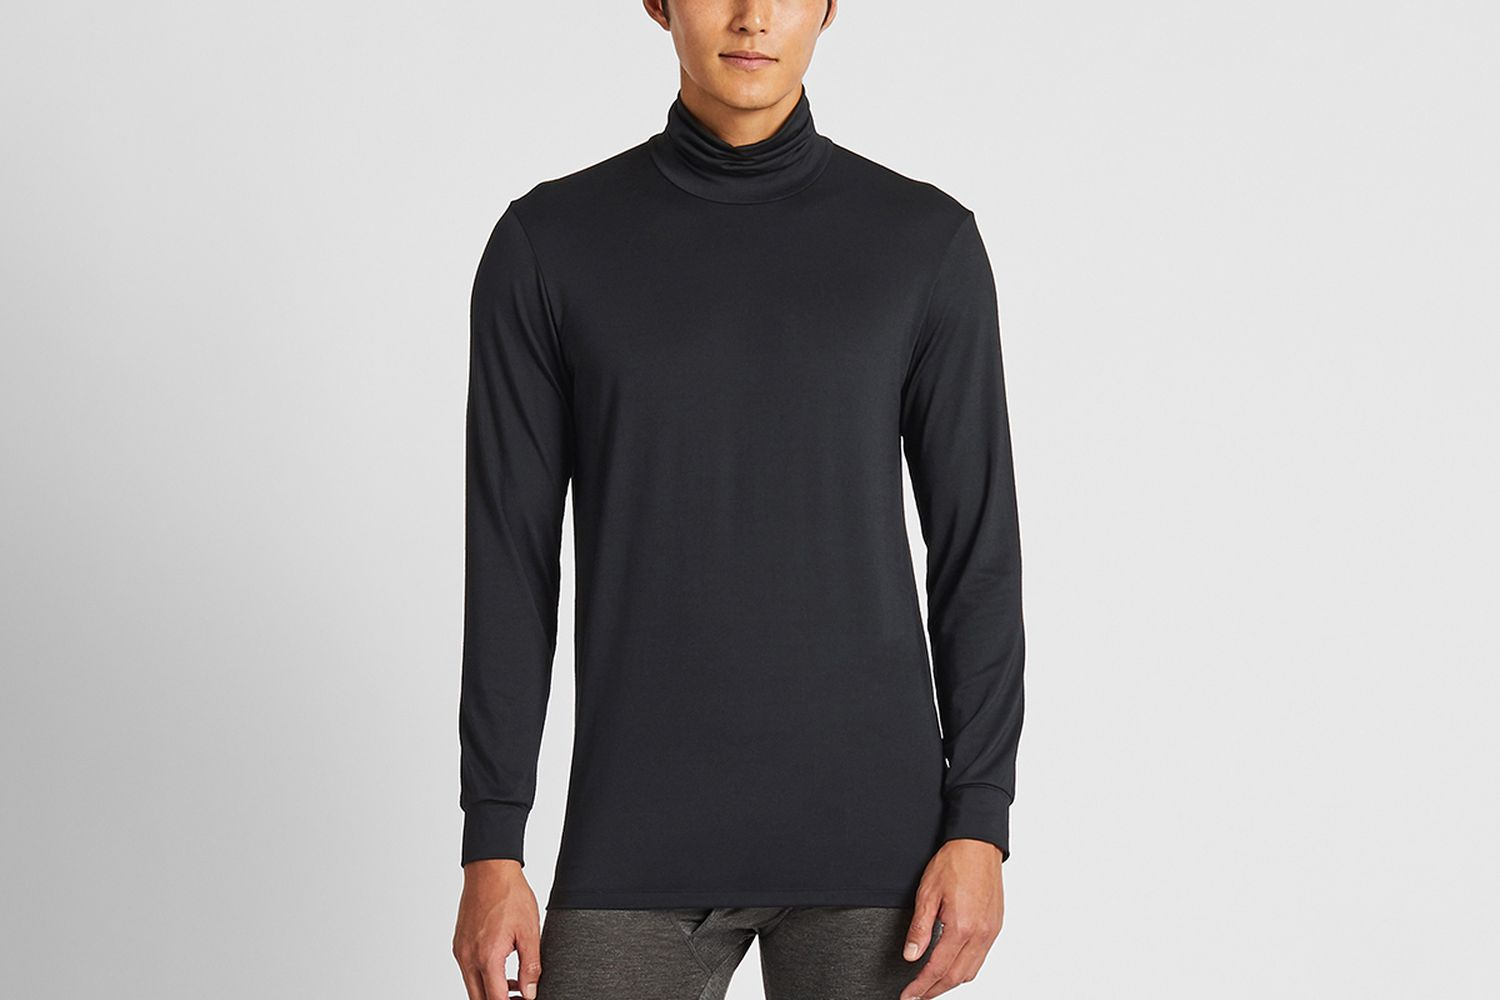 Heattech Turtleneck Long-Sleeve T-shirt